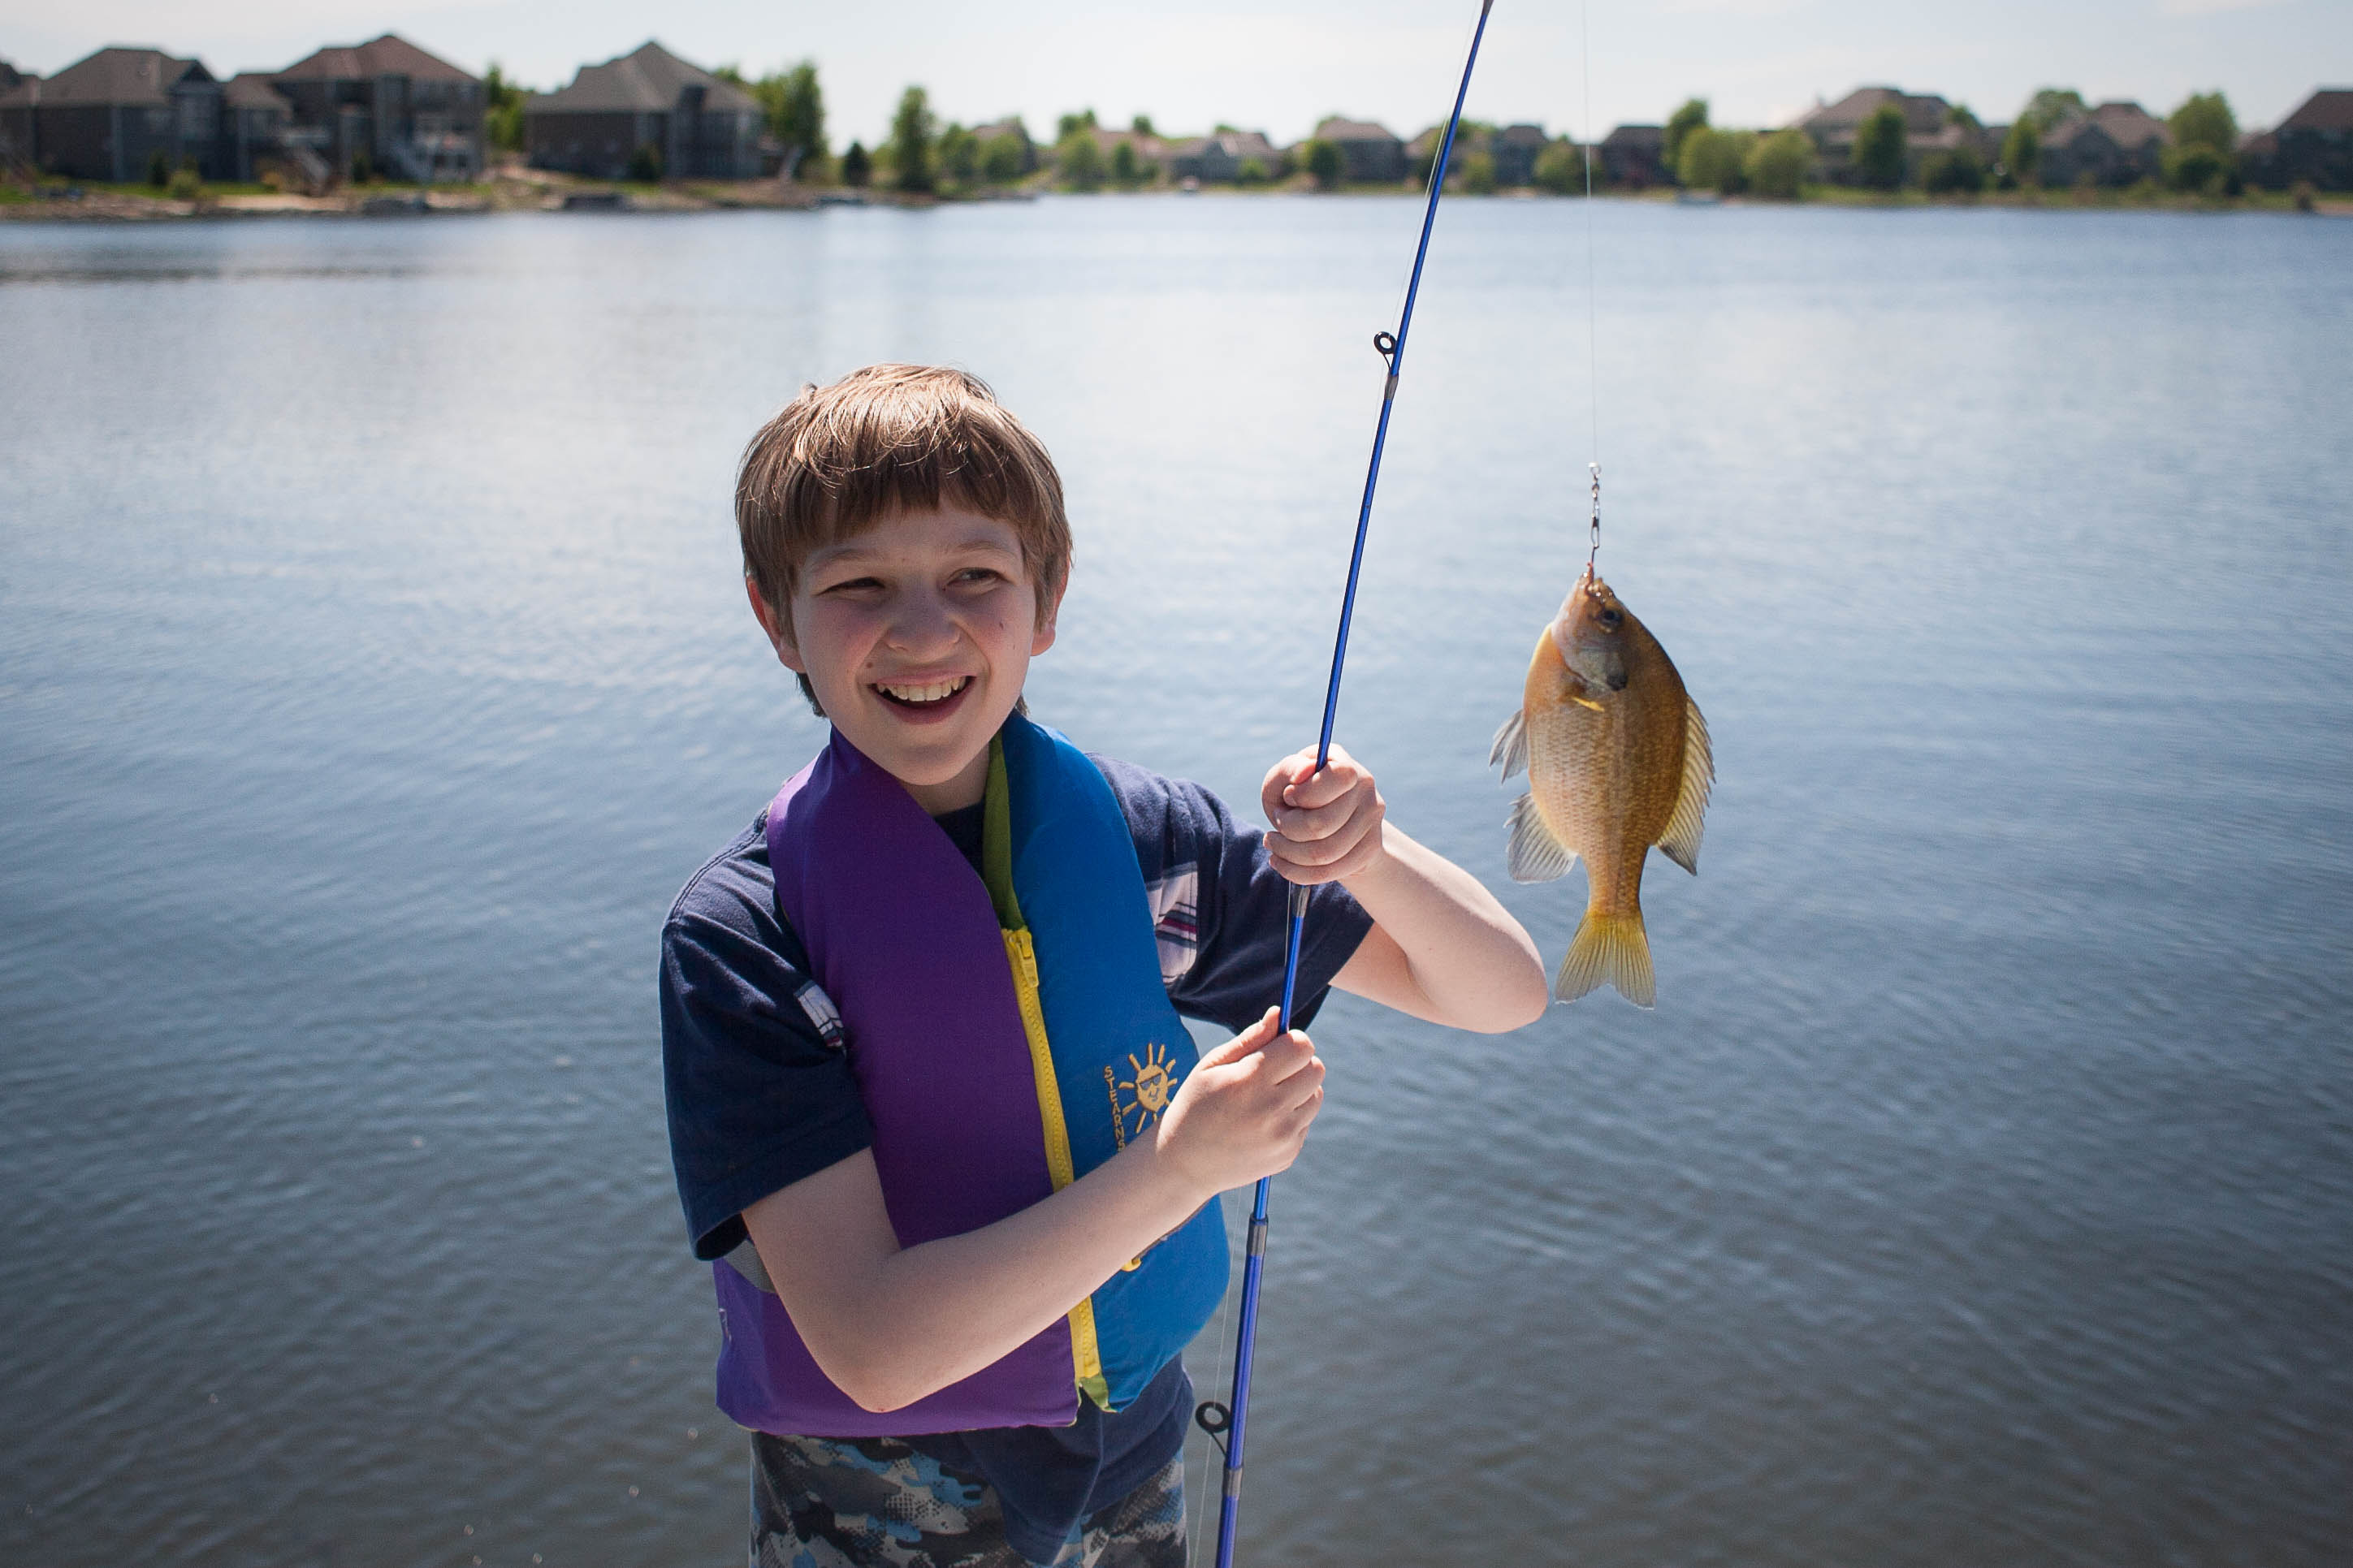 A boy wearing a life jacket smiling at a fish he just caught